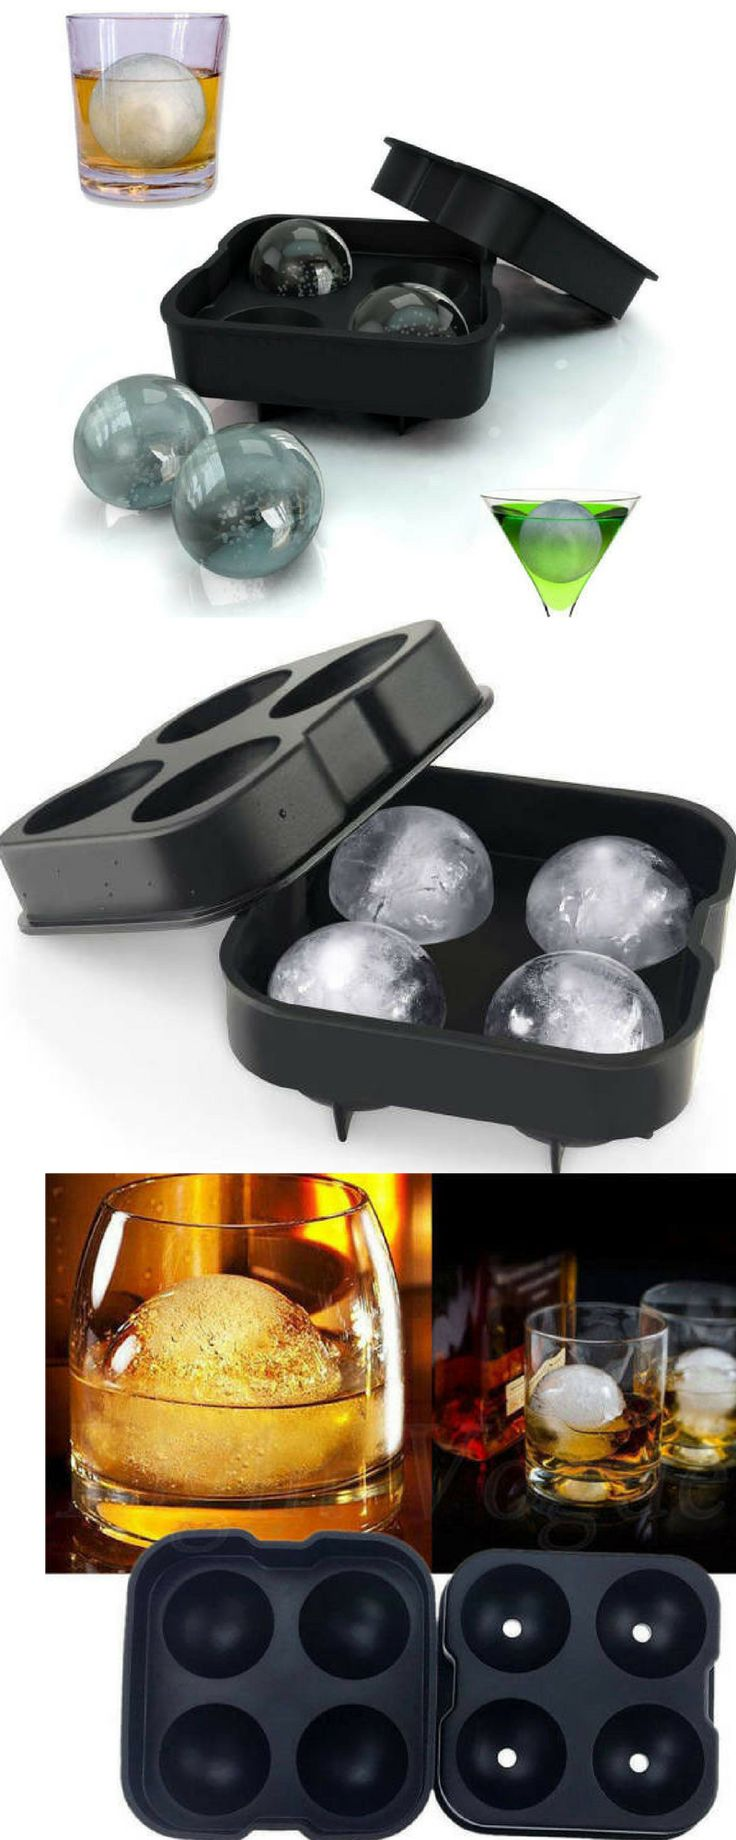 3 Large Ball Ice Cube Trays for Whiskey and Cocktails Ice Cube Molds #cocktails #icecubes #whiskey #affiliate